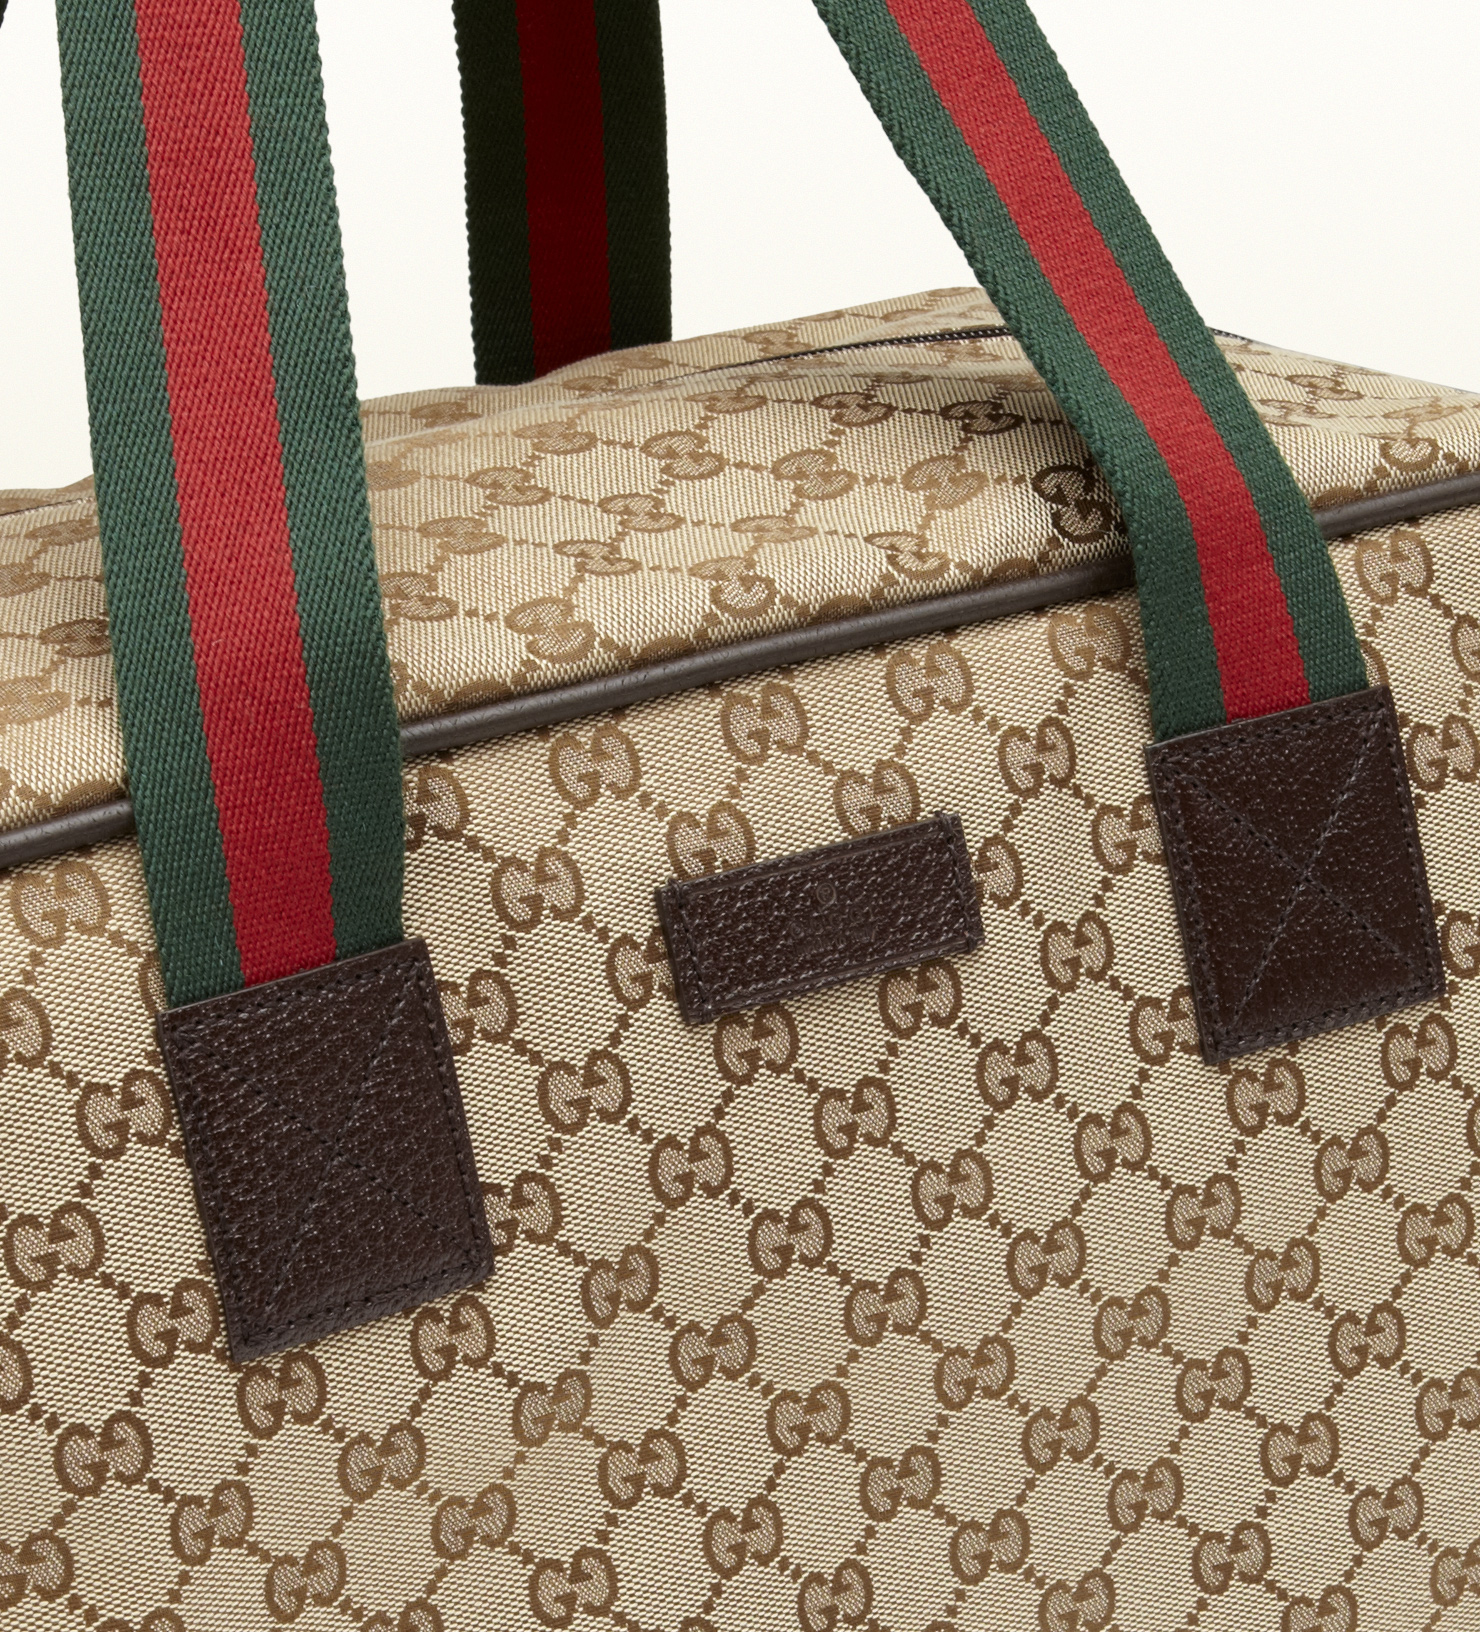 758cd1894 Gucci Original Gg Canvas Carry-on Duffle Bag in Natural for Men - Lyst